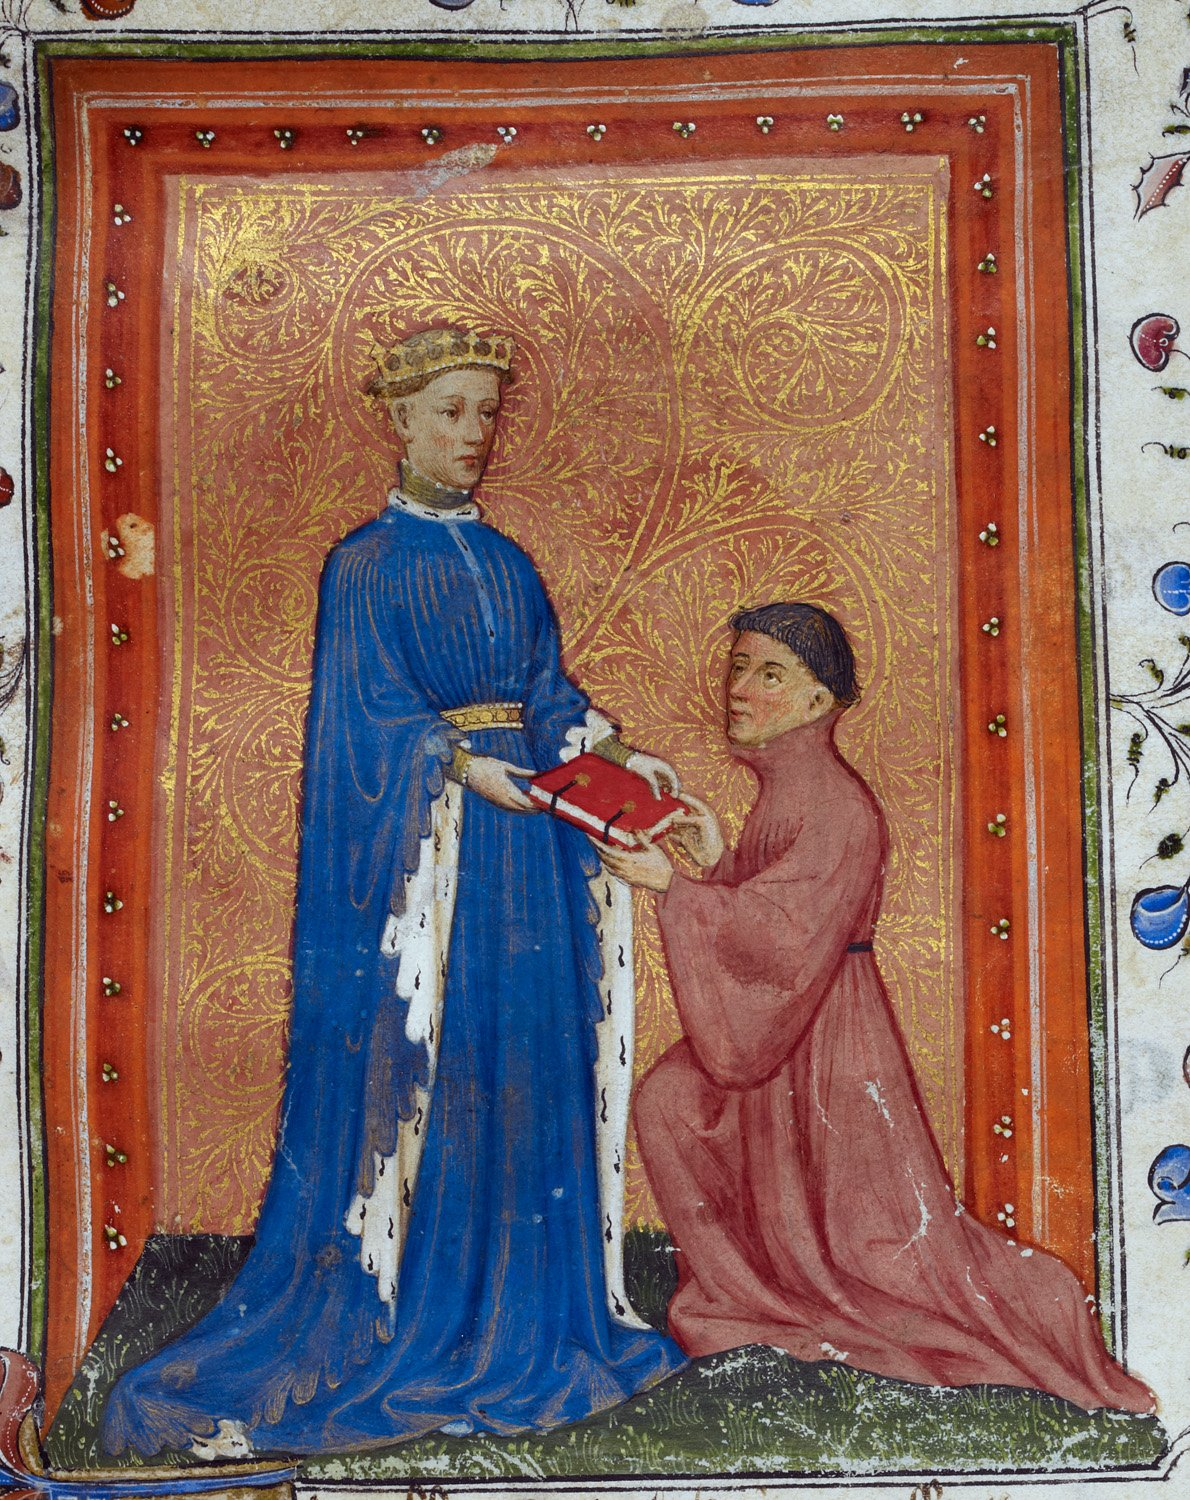 File:Henry, Prince of Wales, presenting this book to John Mowbray. Thomas Hoccleve, Regement of Princes, London, c. 1411-1413, Arundel 38, f. 37detail.jpg